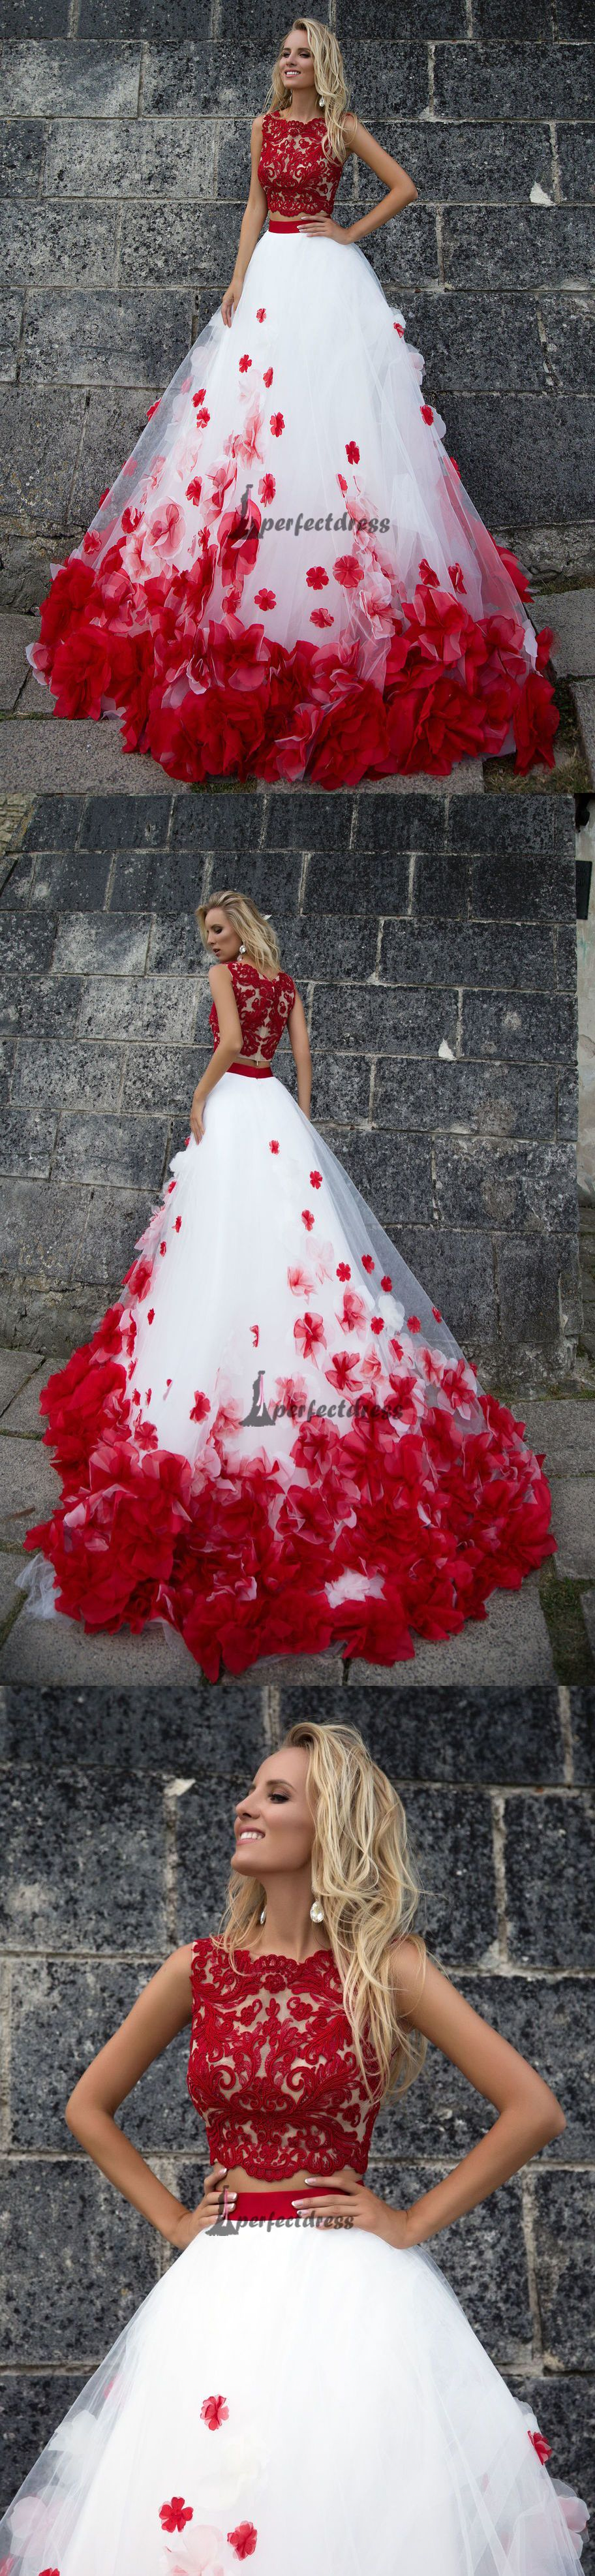 Two Pieces Wedding Dresses White And Red Bridal Gown Pd4558709 Red Bridal Gown Tulle Wedding Dress Two Piece Wedding Dress [ 3947 x 912 Pixel ]